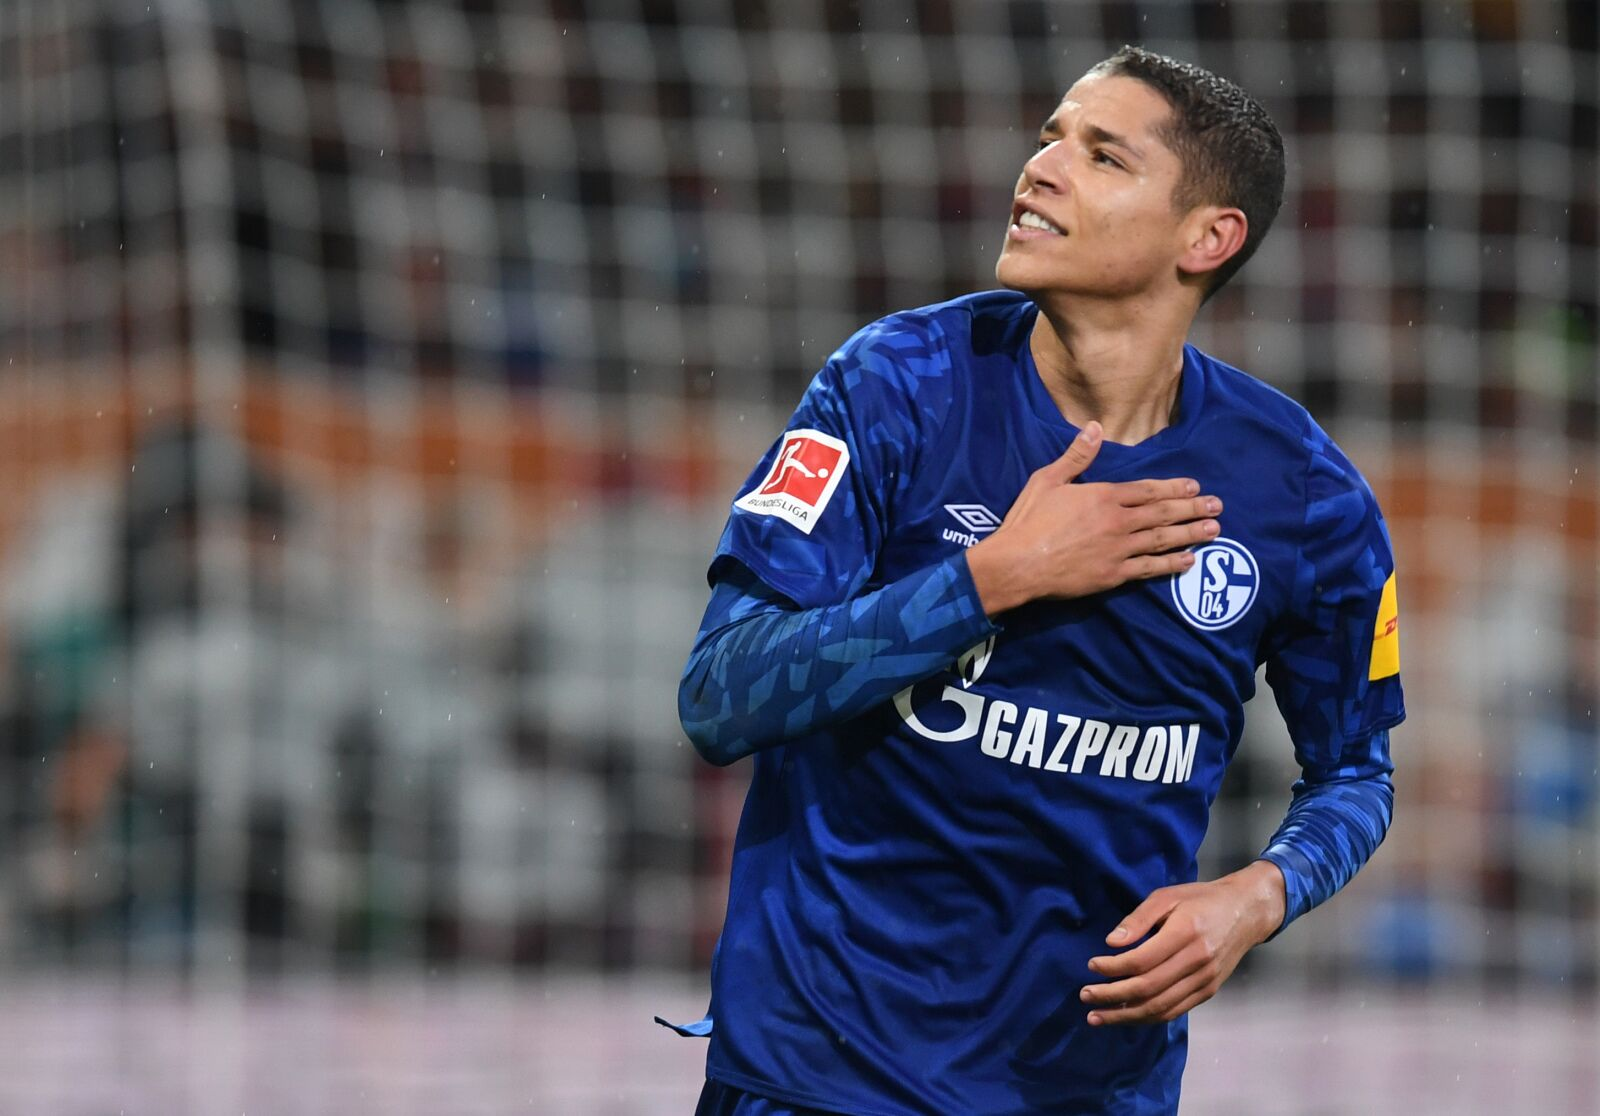 Schalke reportedly sign top star Amine Harit to an extension